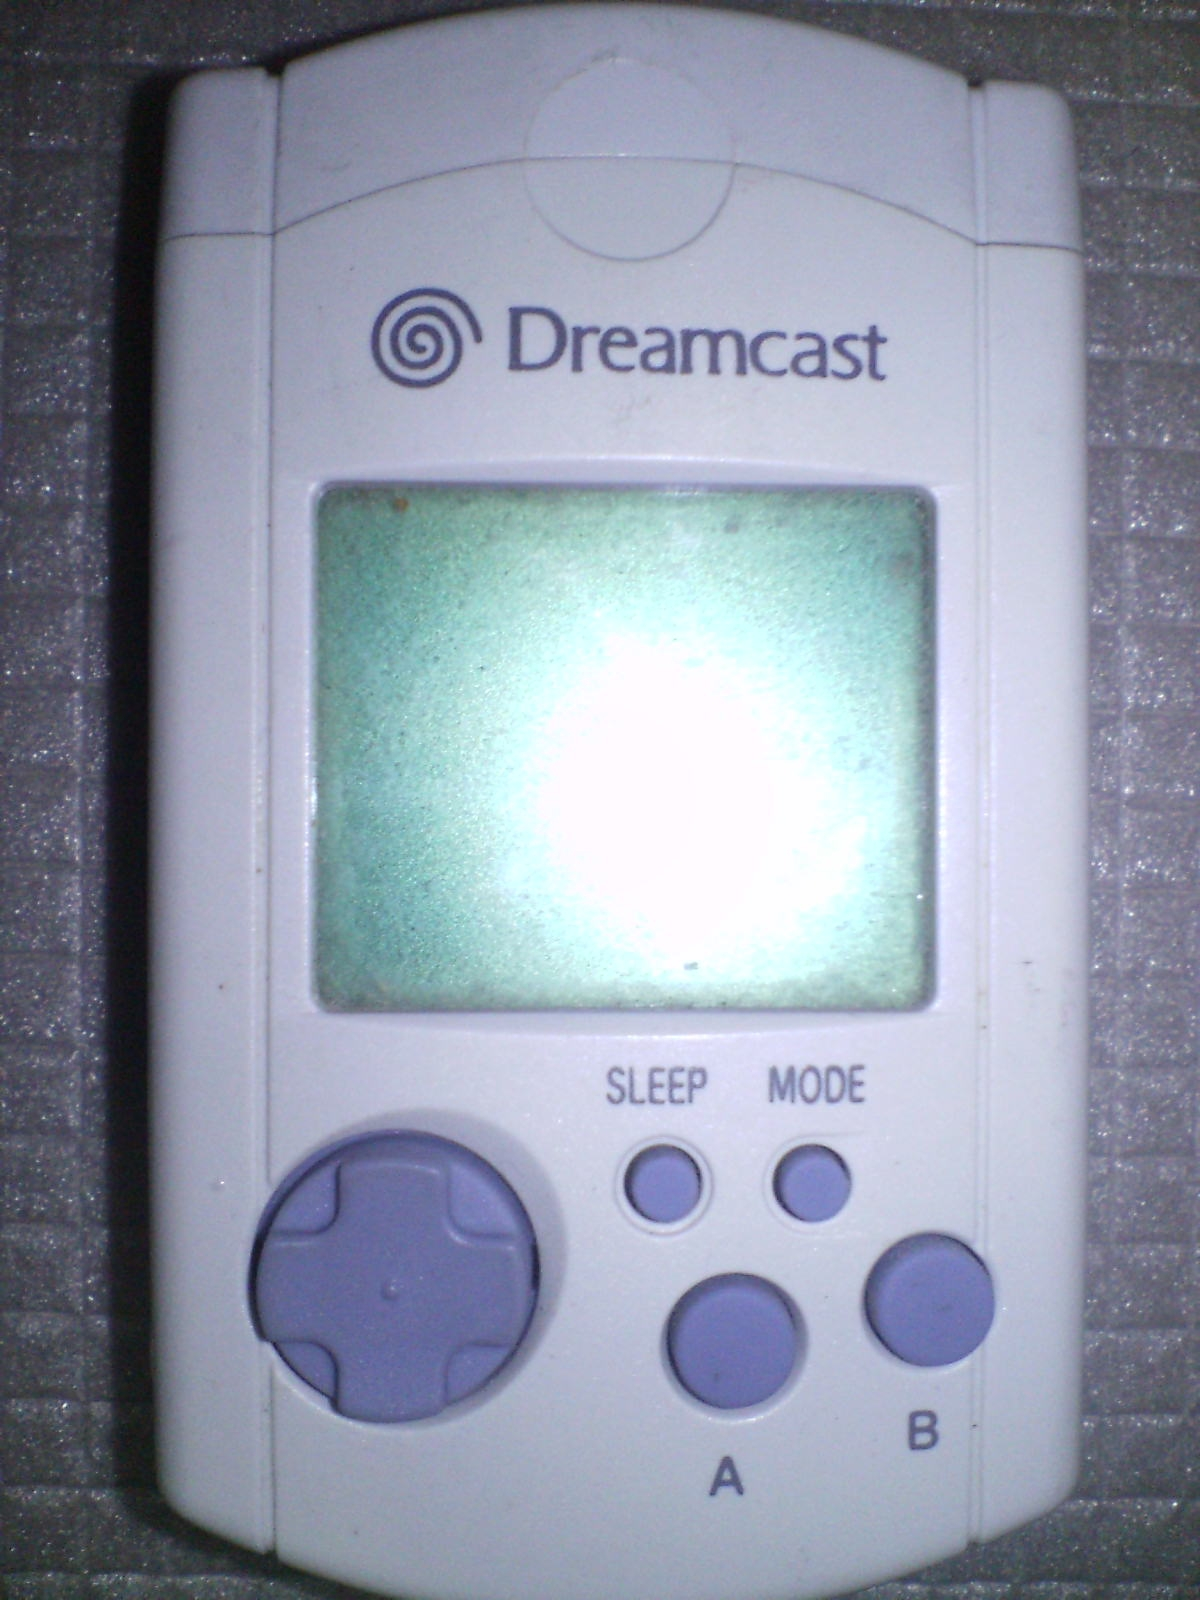   Play a dreamcast game on psp   >>   dreamcast cdi files  